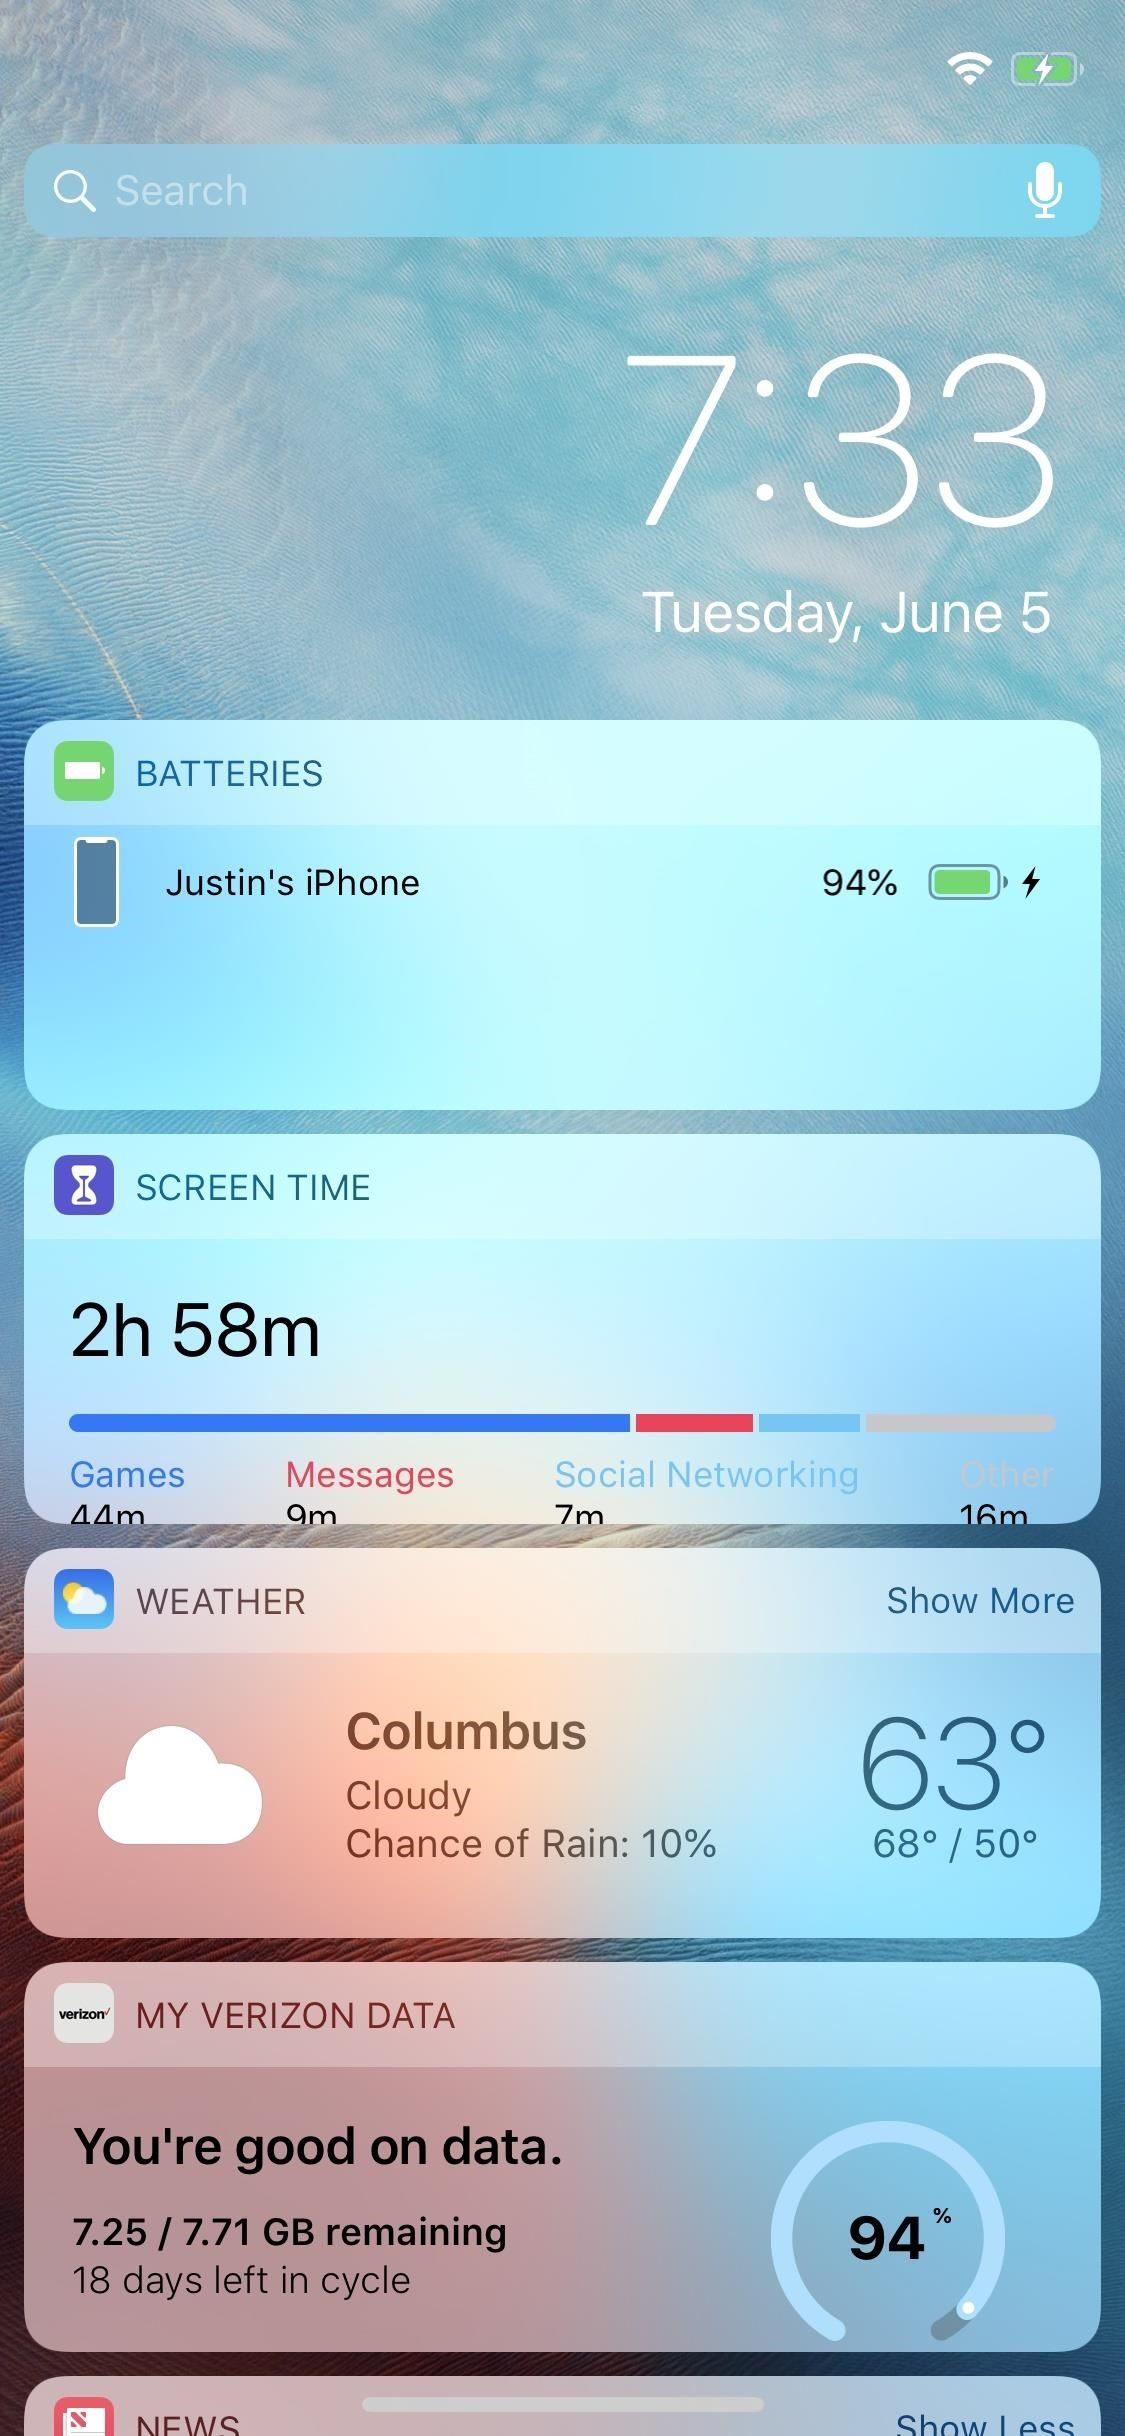 How to Get Your Screen Time Faster Statistics in iOS 12 for iPhone [19659009] Accessing the Time Usage Screen Stats Faster in iOS 12 for iPhone